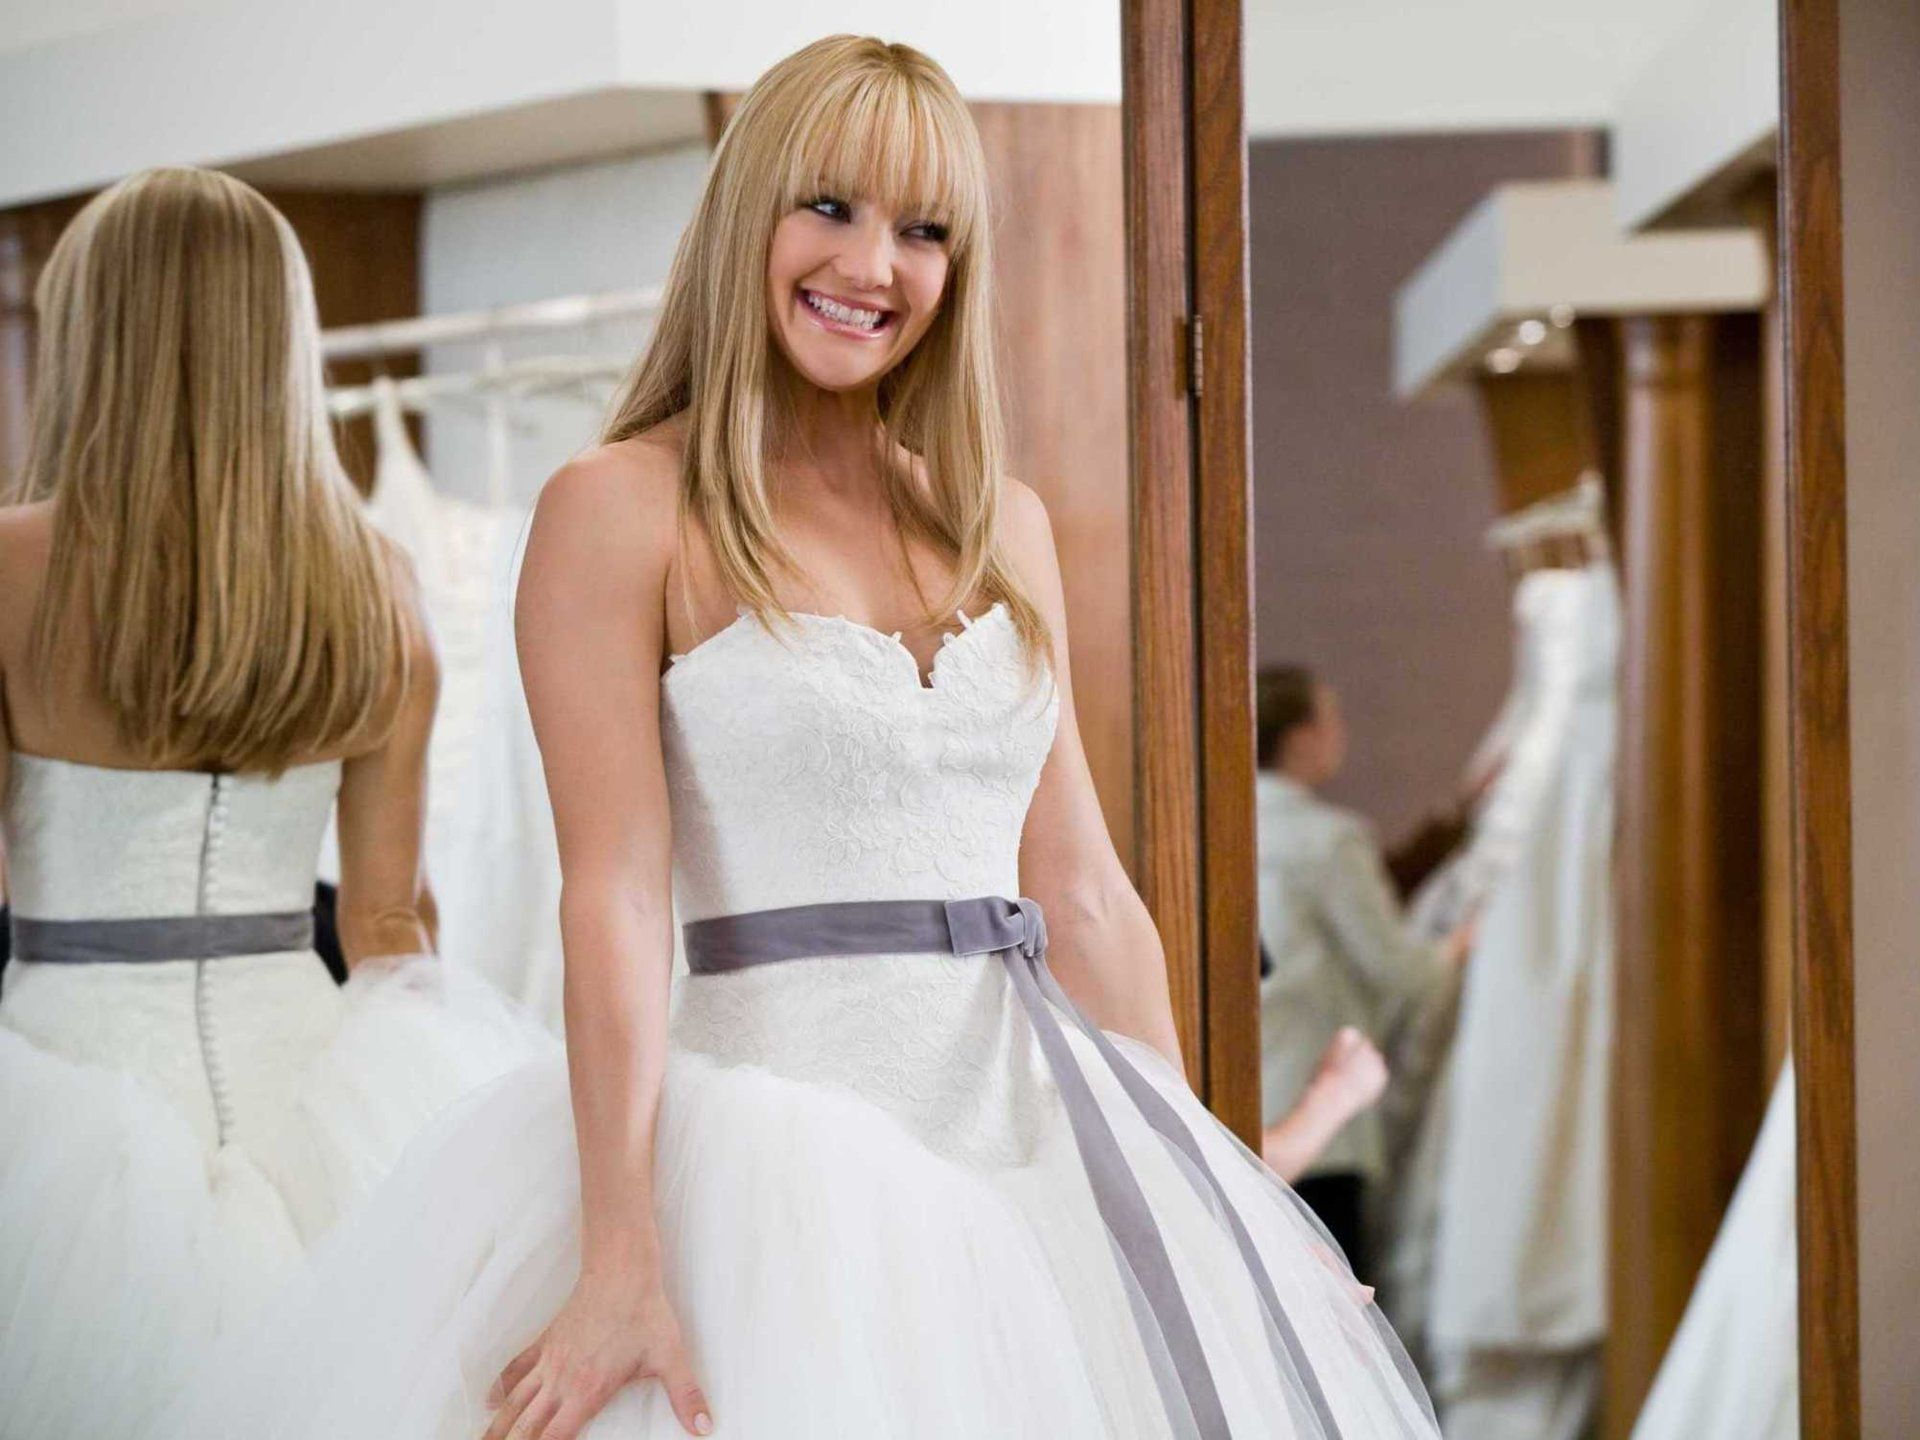 12 tricks that will save you hundreds on a wedding dress